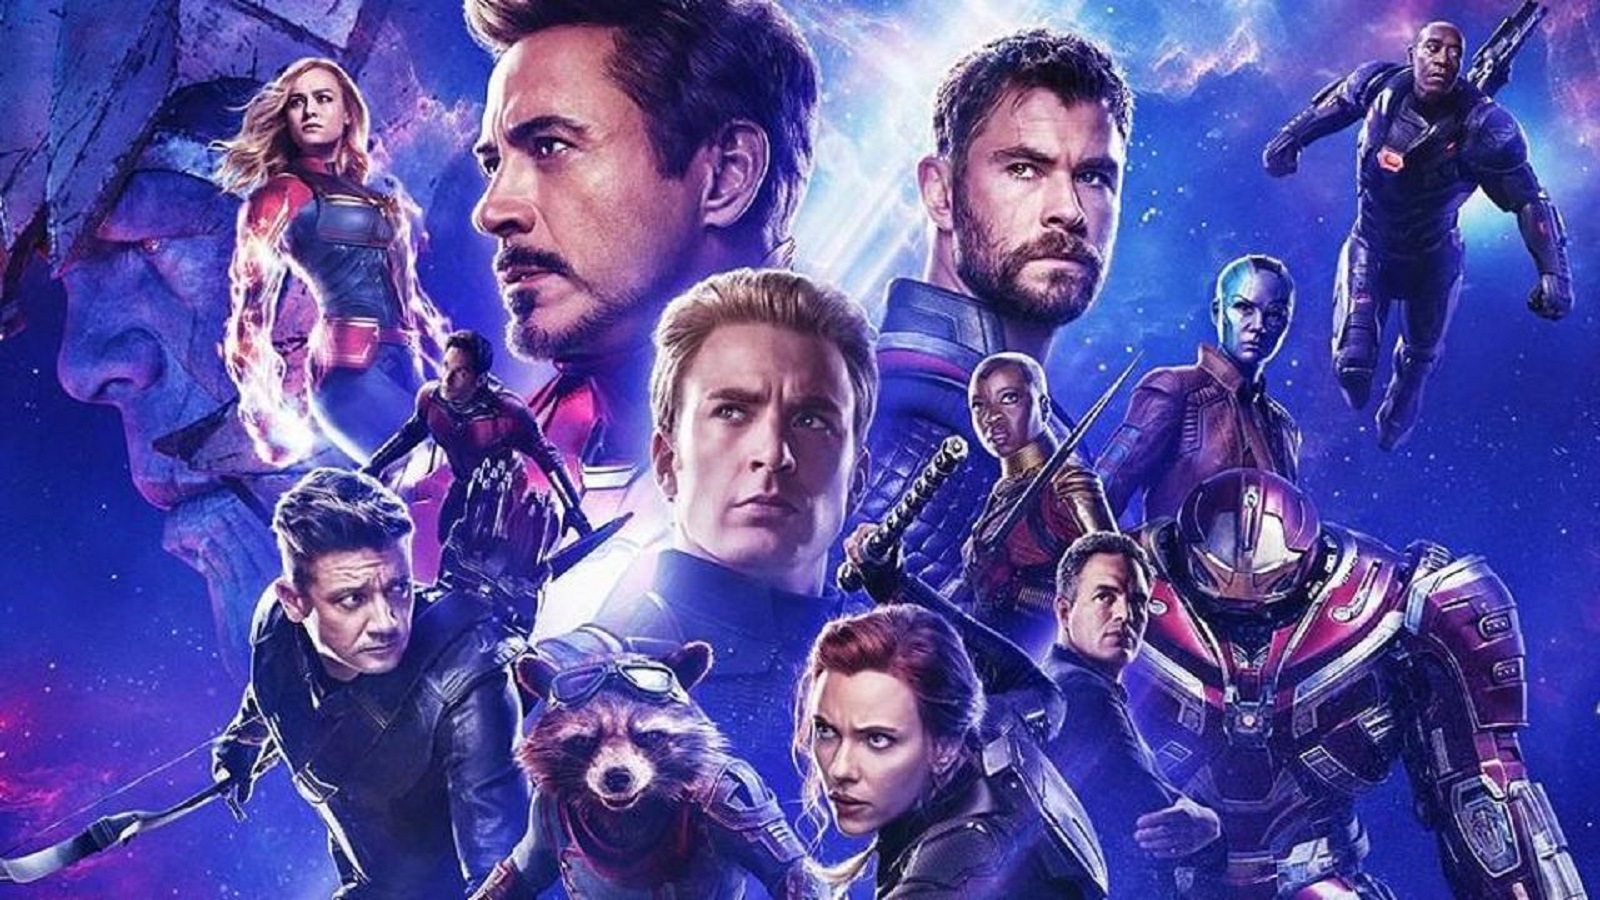 Avengers Endgame Is First Marvel Film To Feature A Gay Character